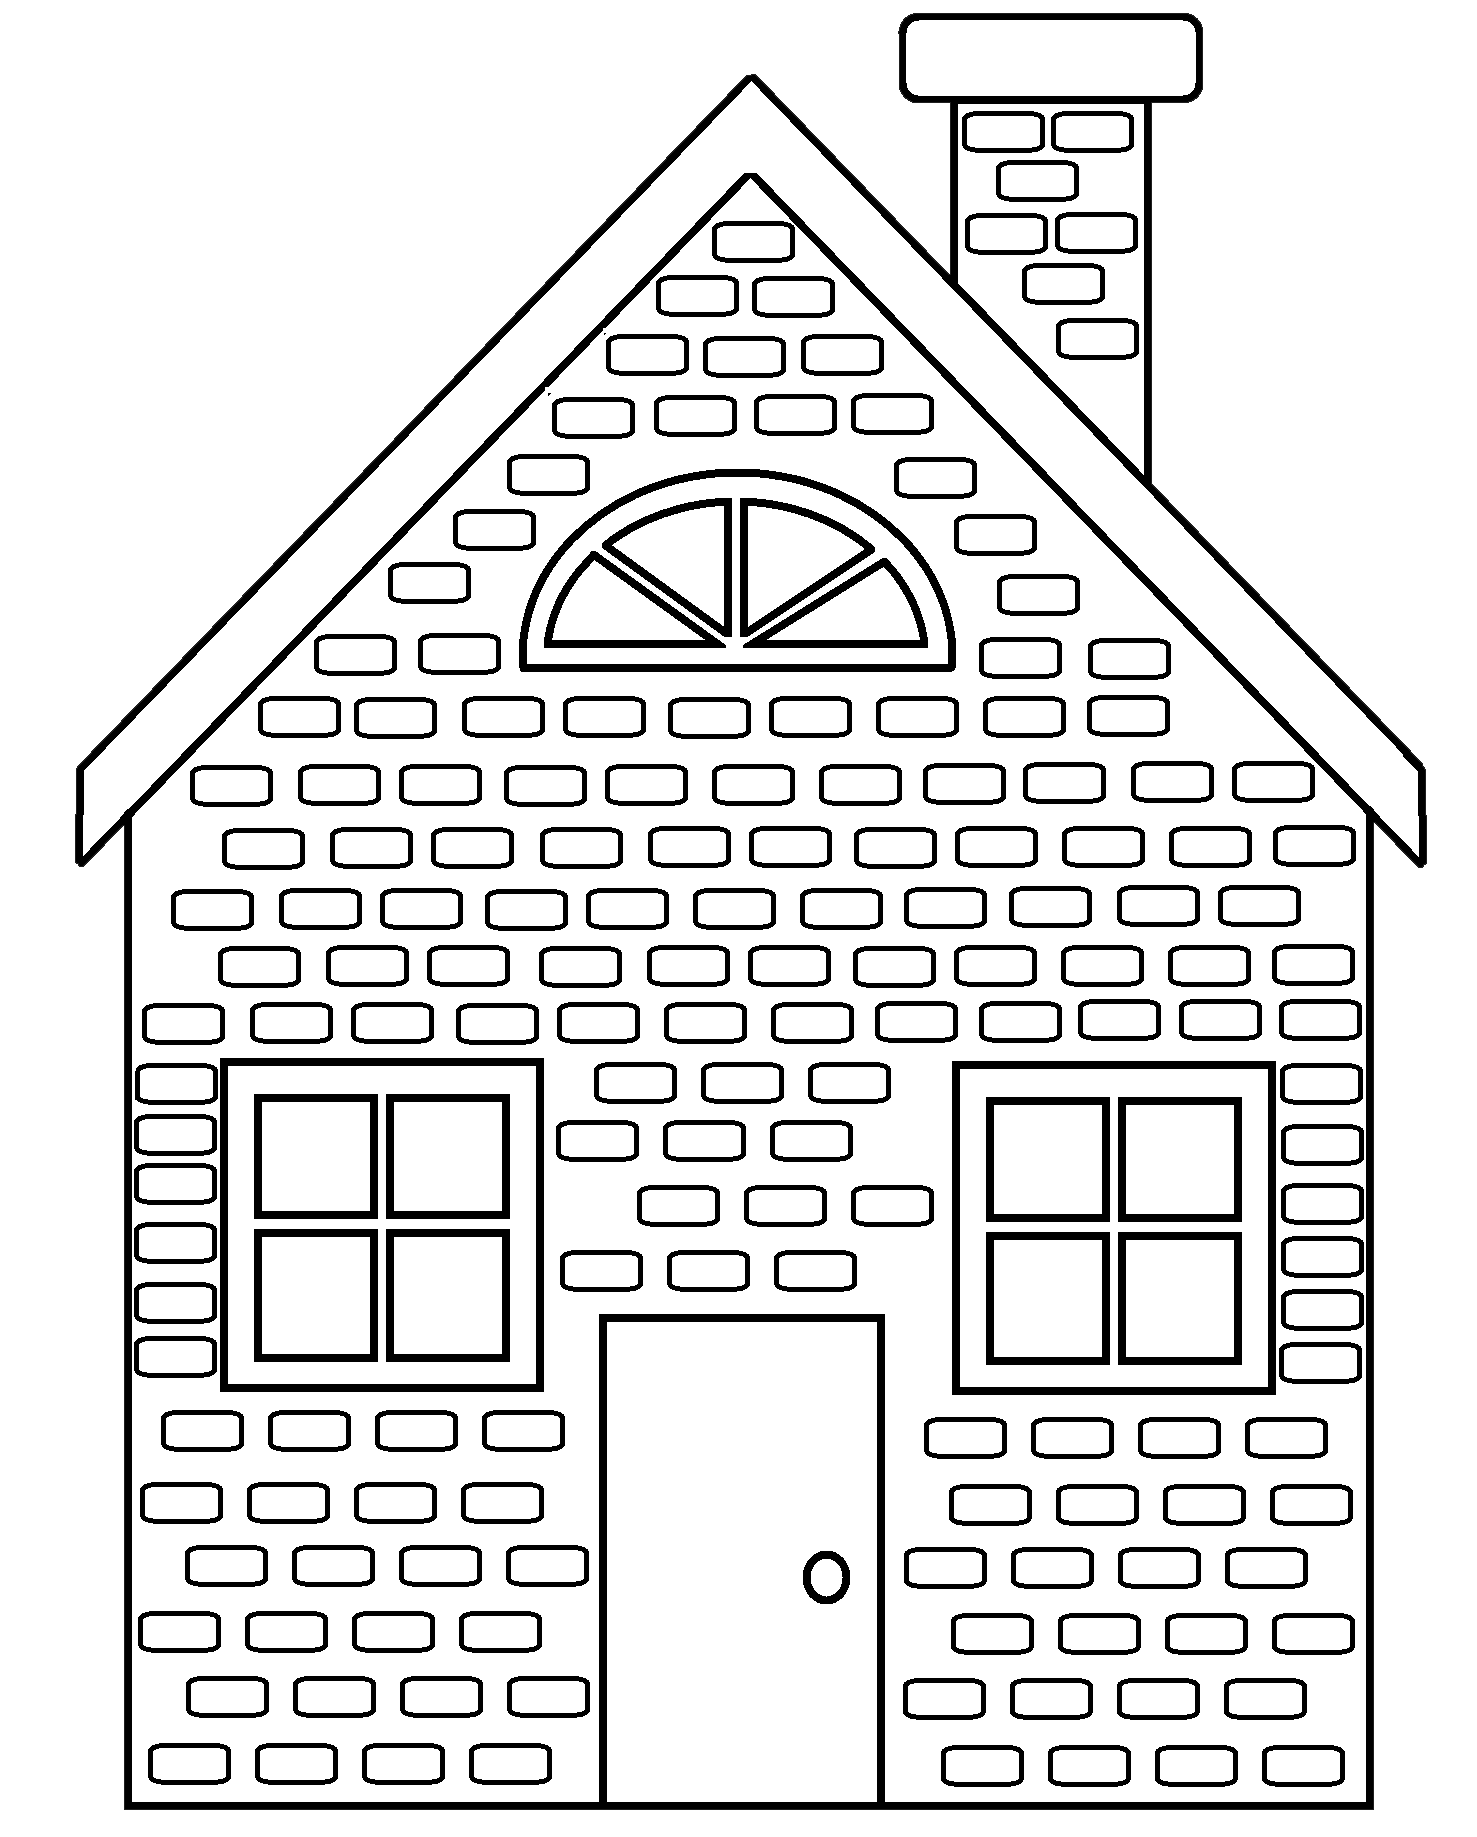 Top 20 Free Printable House Coloring Pages Online | Coloring Pages Of A Brick House  | title